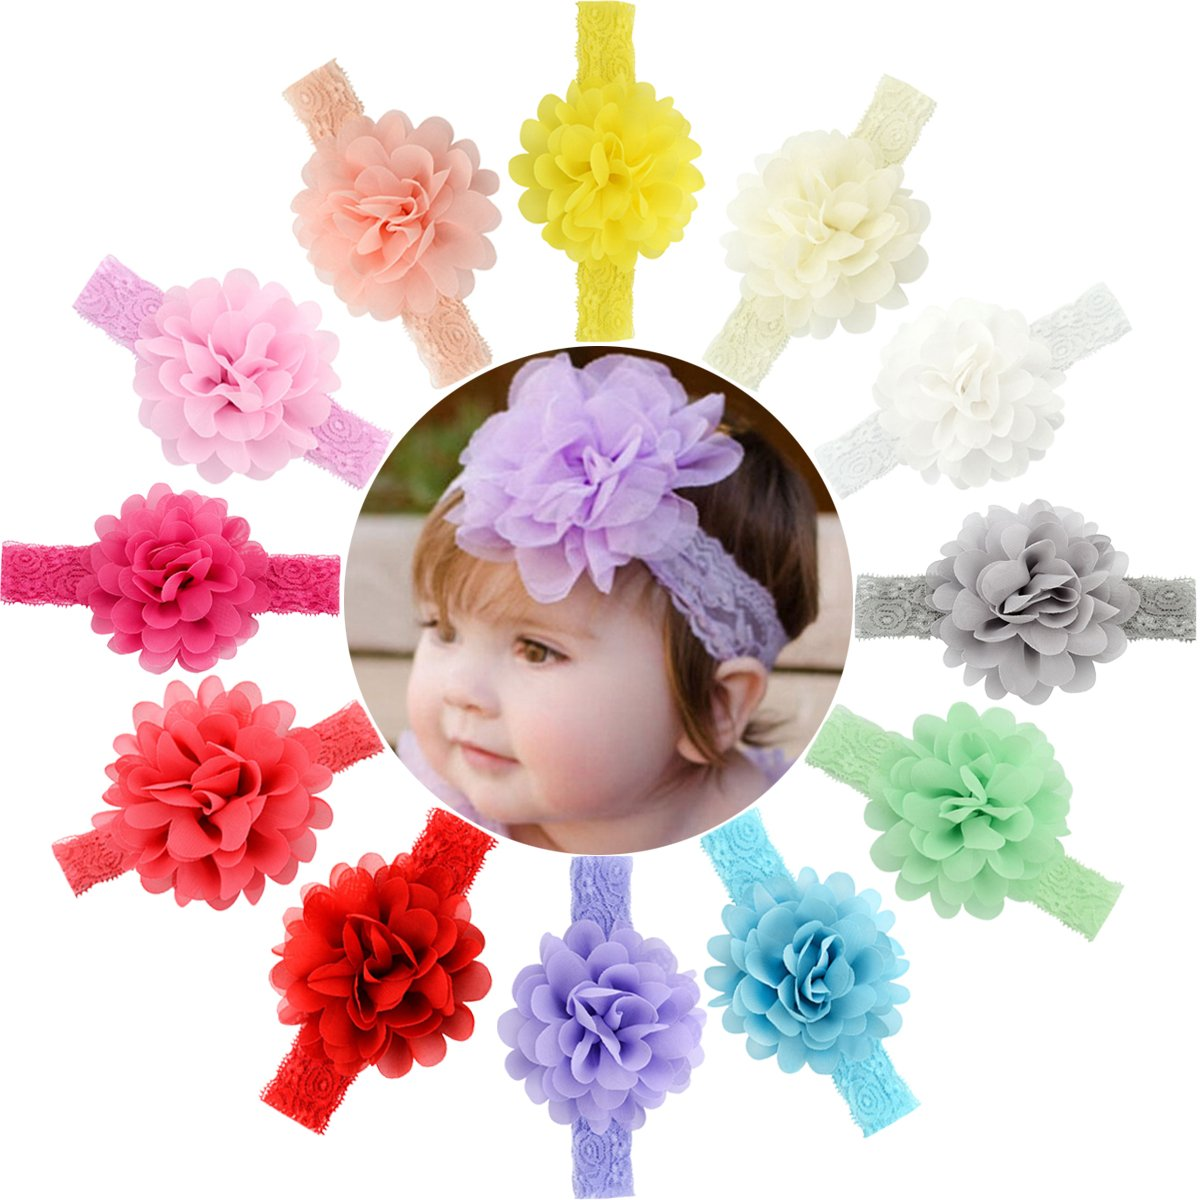 Cute Girl Baby Toddler Infant Flower Headband Hair Bow Band Accessories Ivory Hair Accessories Durable Service Clothing, Shoes & Accessories